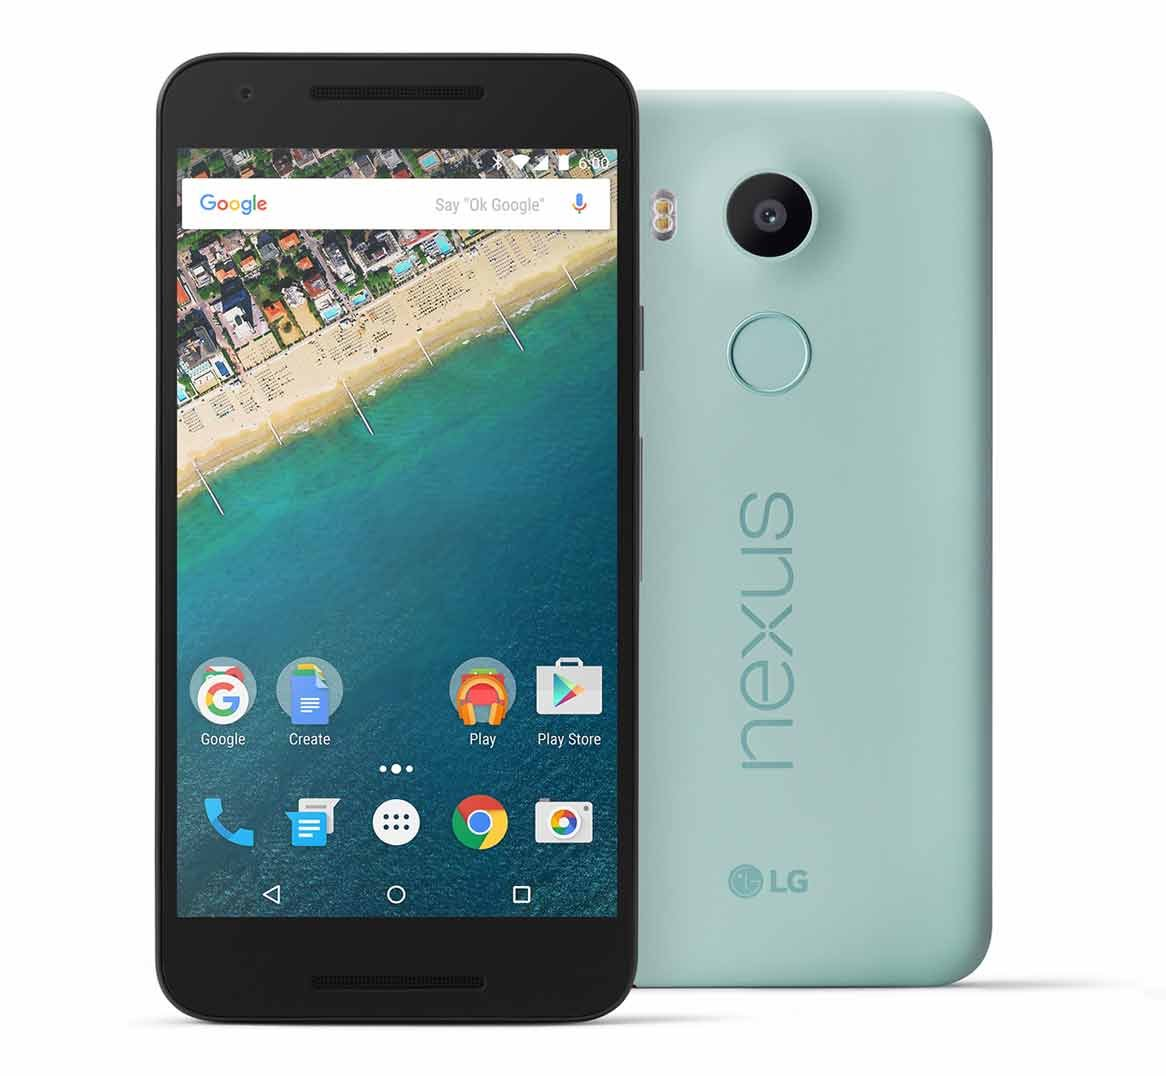 Install Android 7.1.1 Nougat with LineageOS 14.1 Nightly ...